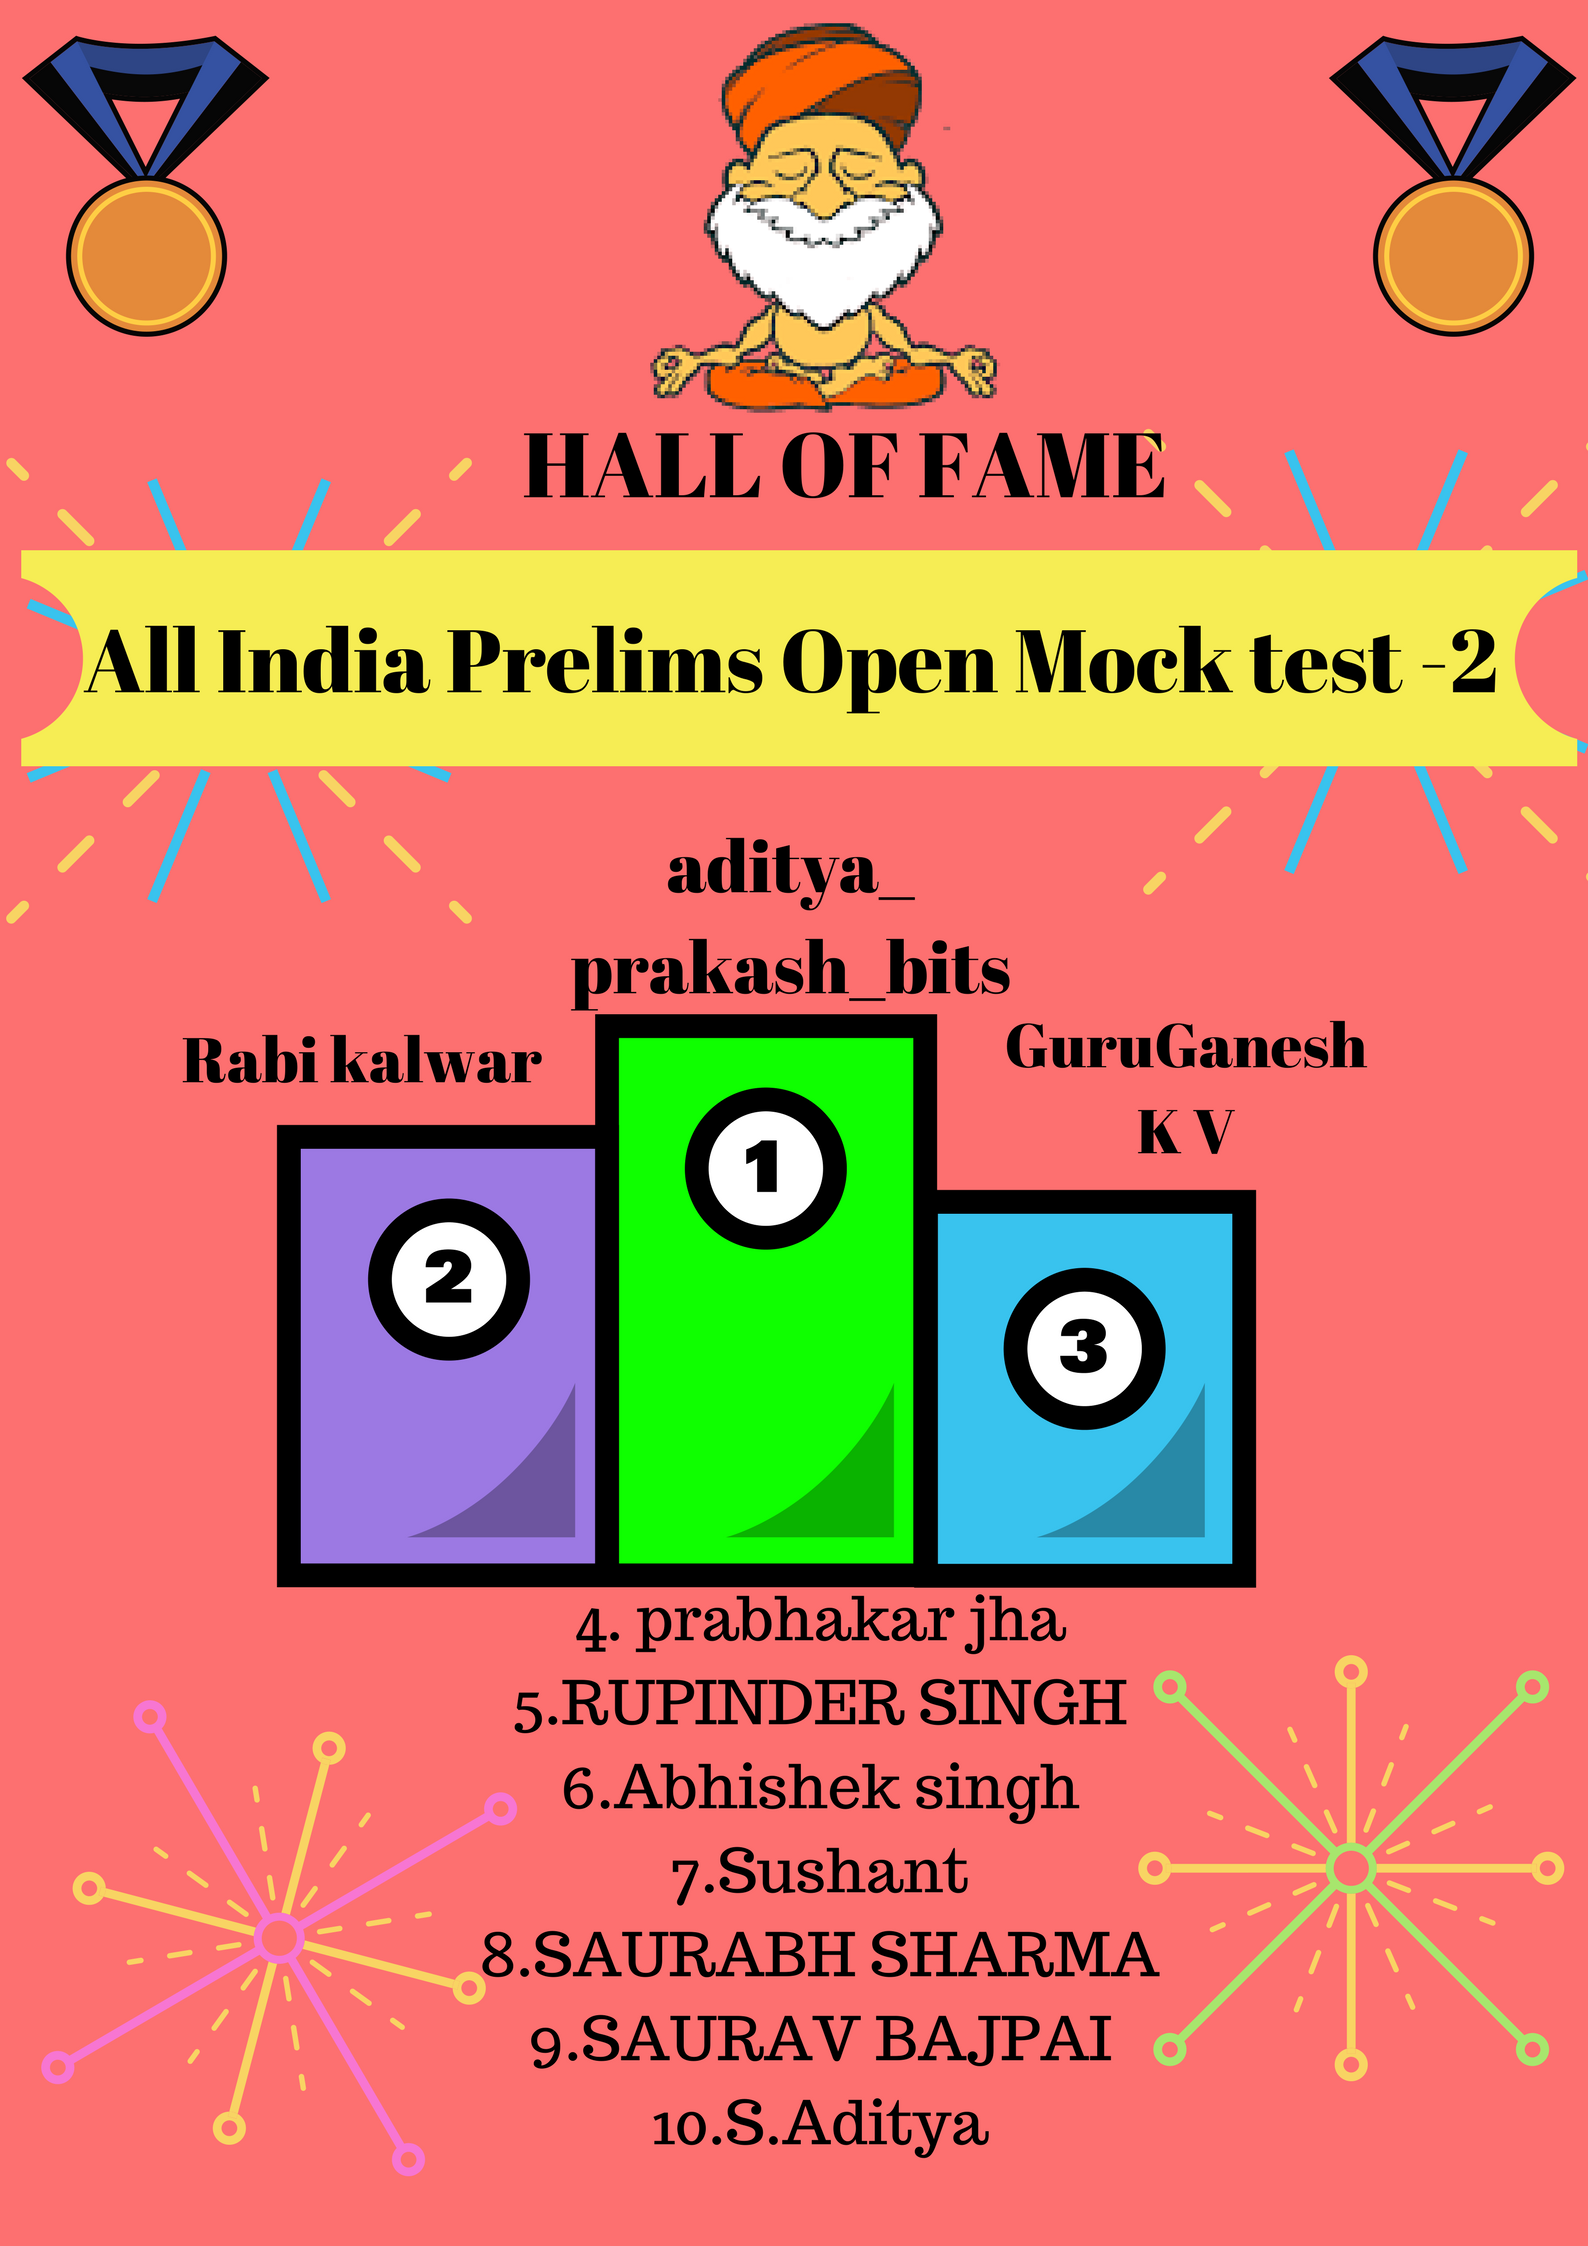 IASbaba's ALL INDIA PRELIMS OPEN MOCK TEST 2-RESULT, RANK AND ANALYSIS!